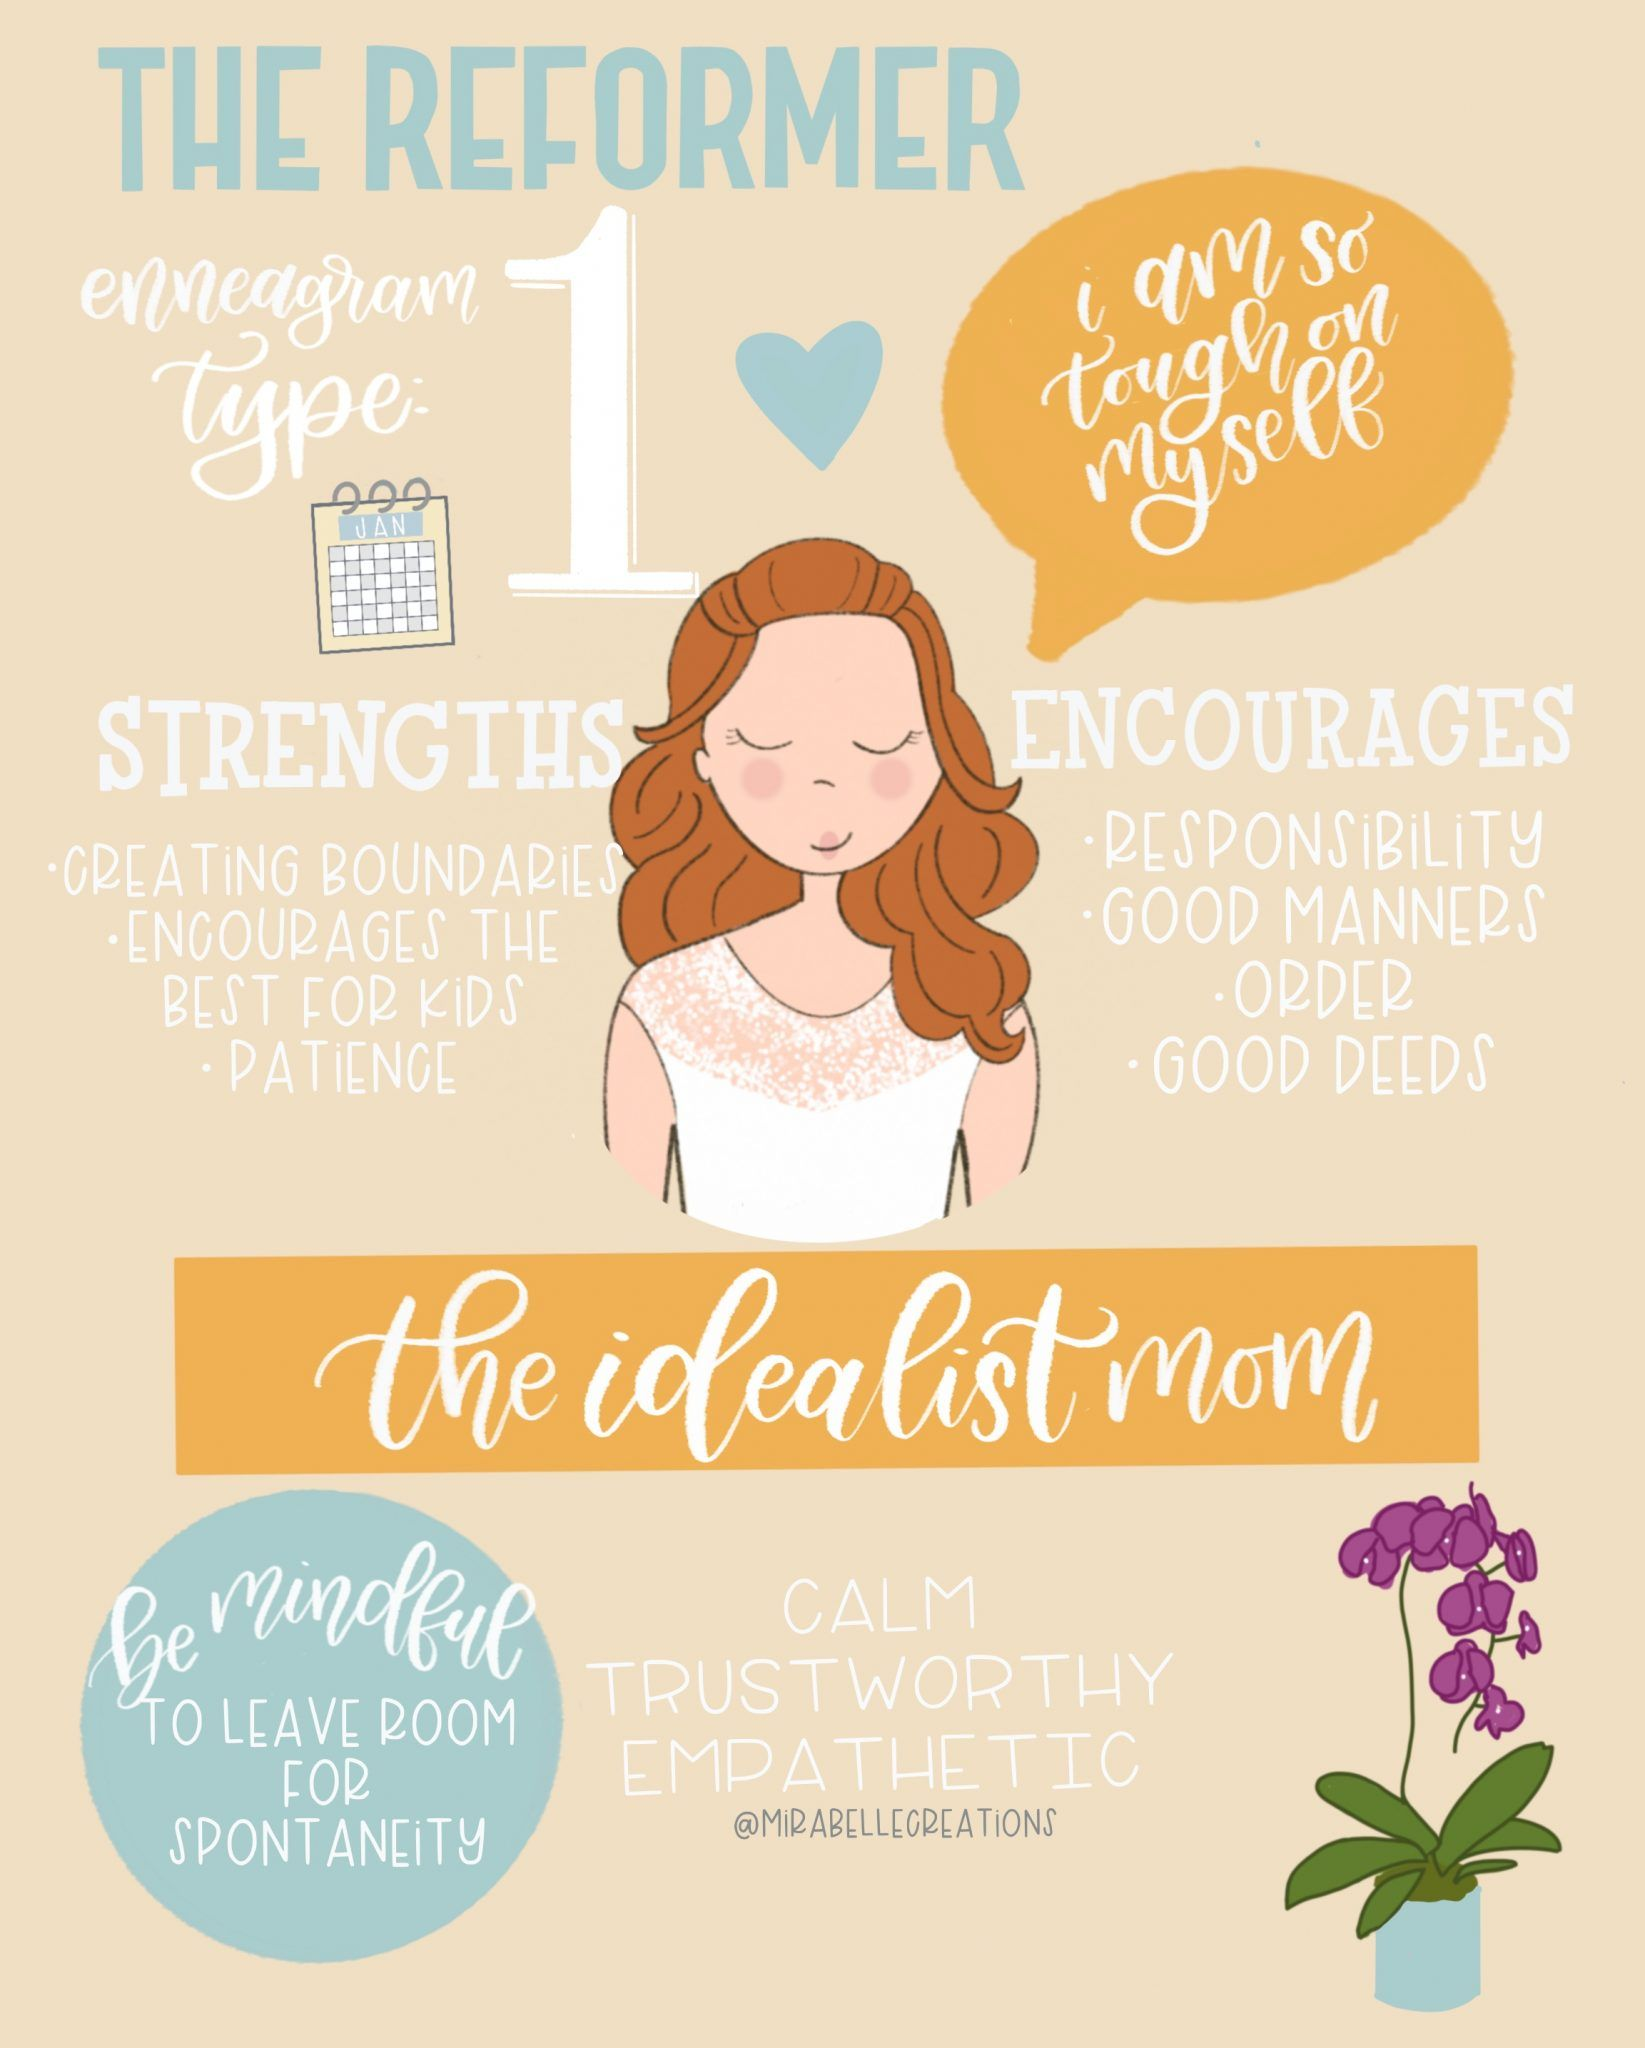 What Your Enneagram Type Tells Us About What Type of Mom You Are